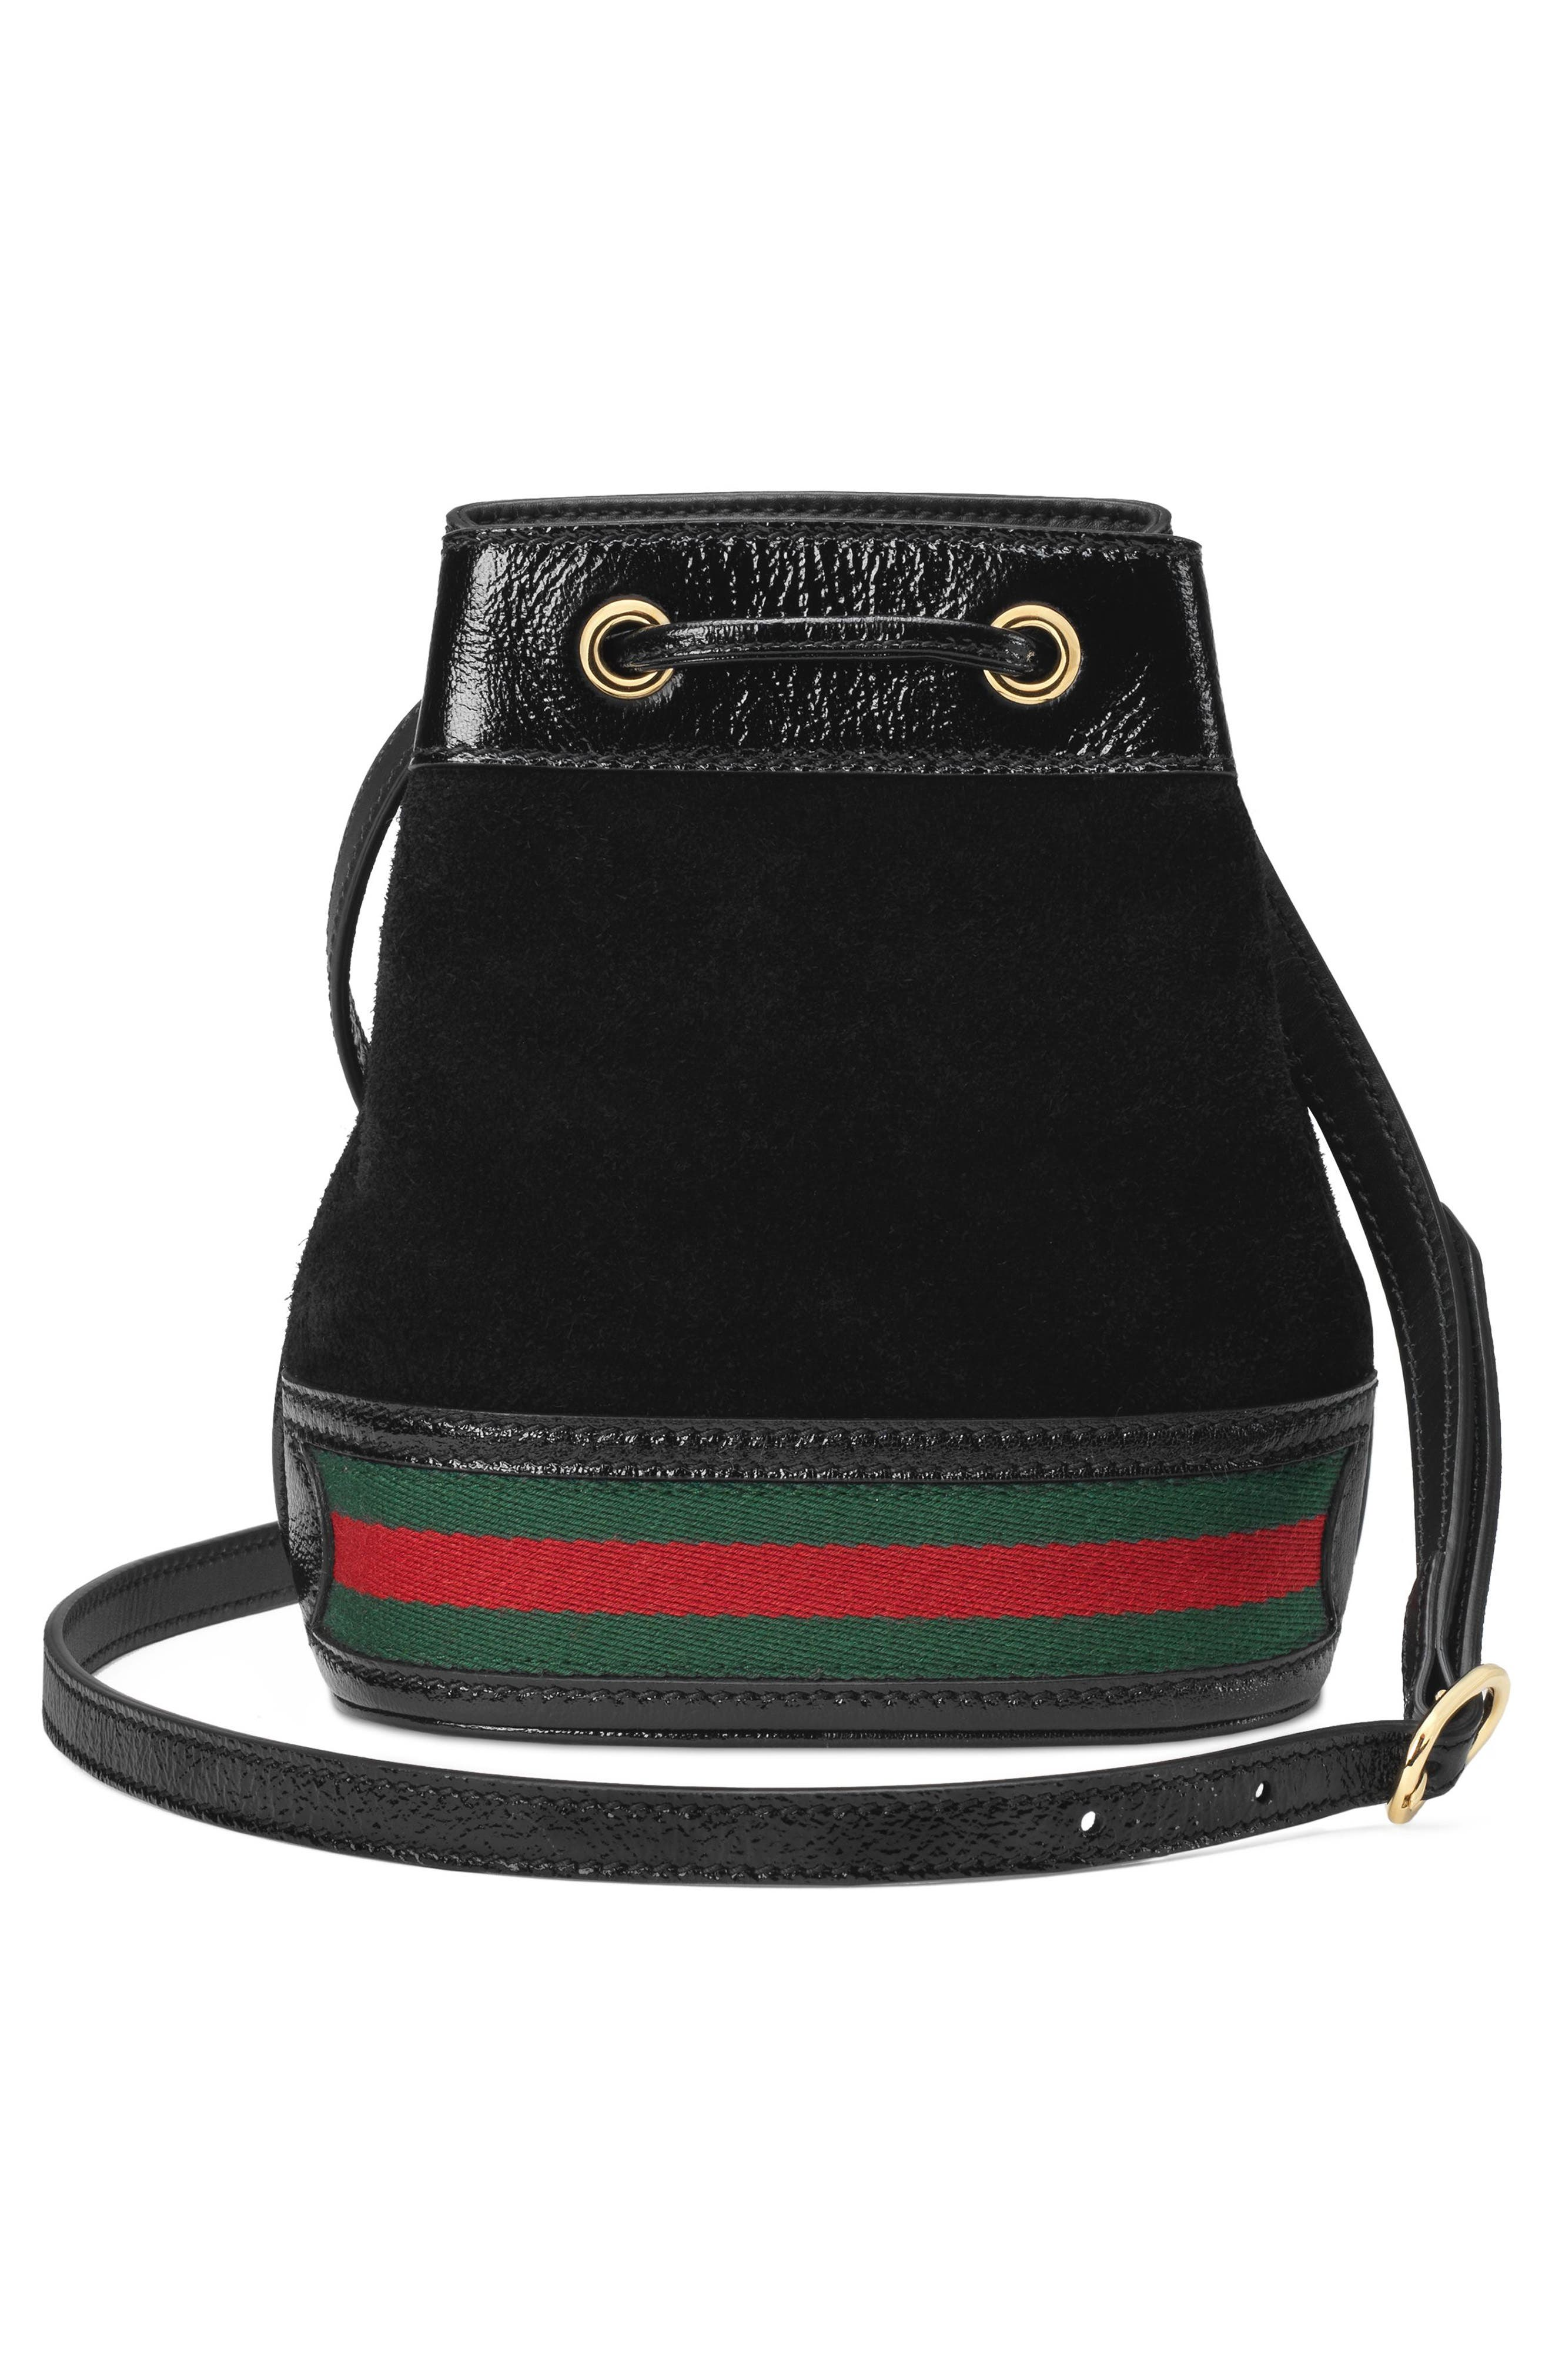 Mini Ophidia Suede & Leather Bucket Bag,                             Alternate thumbnail 2, color,                             NERO/ VERT/ RED